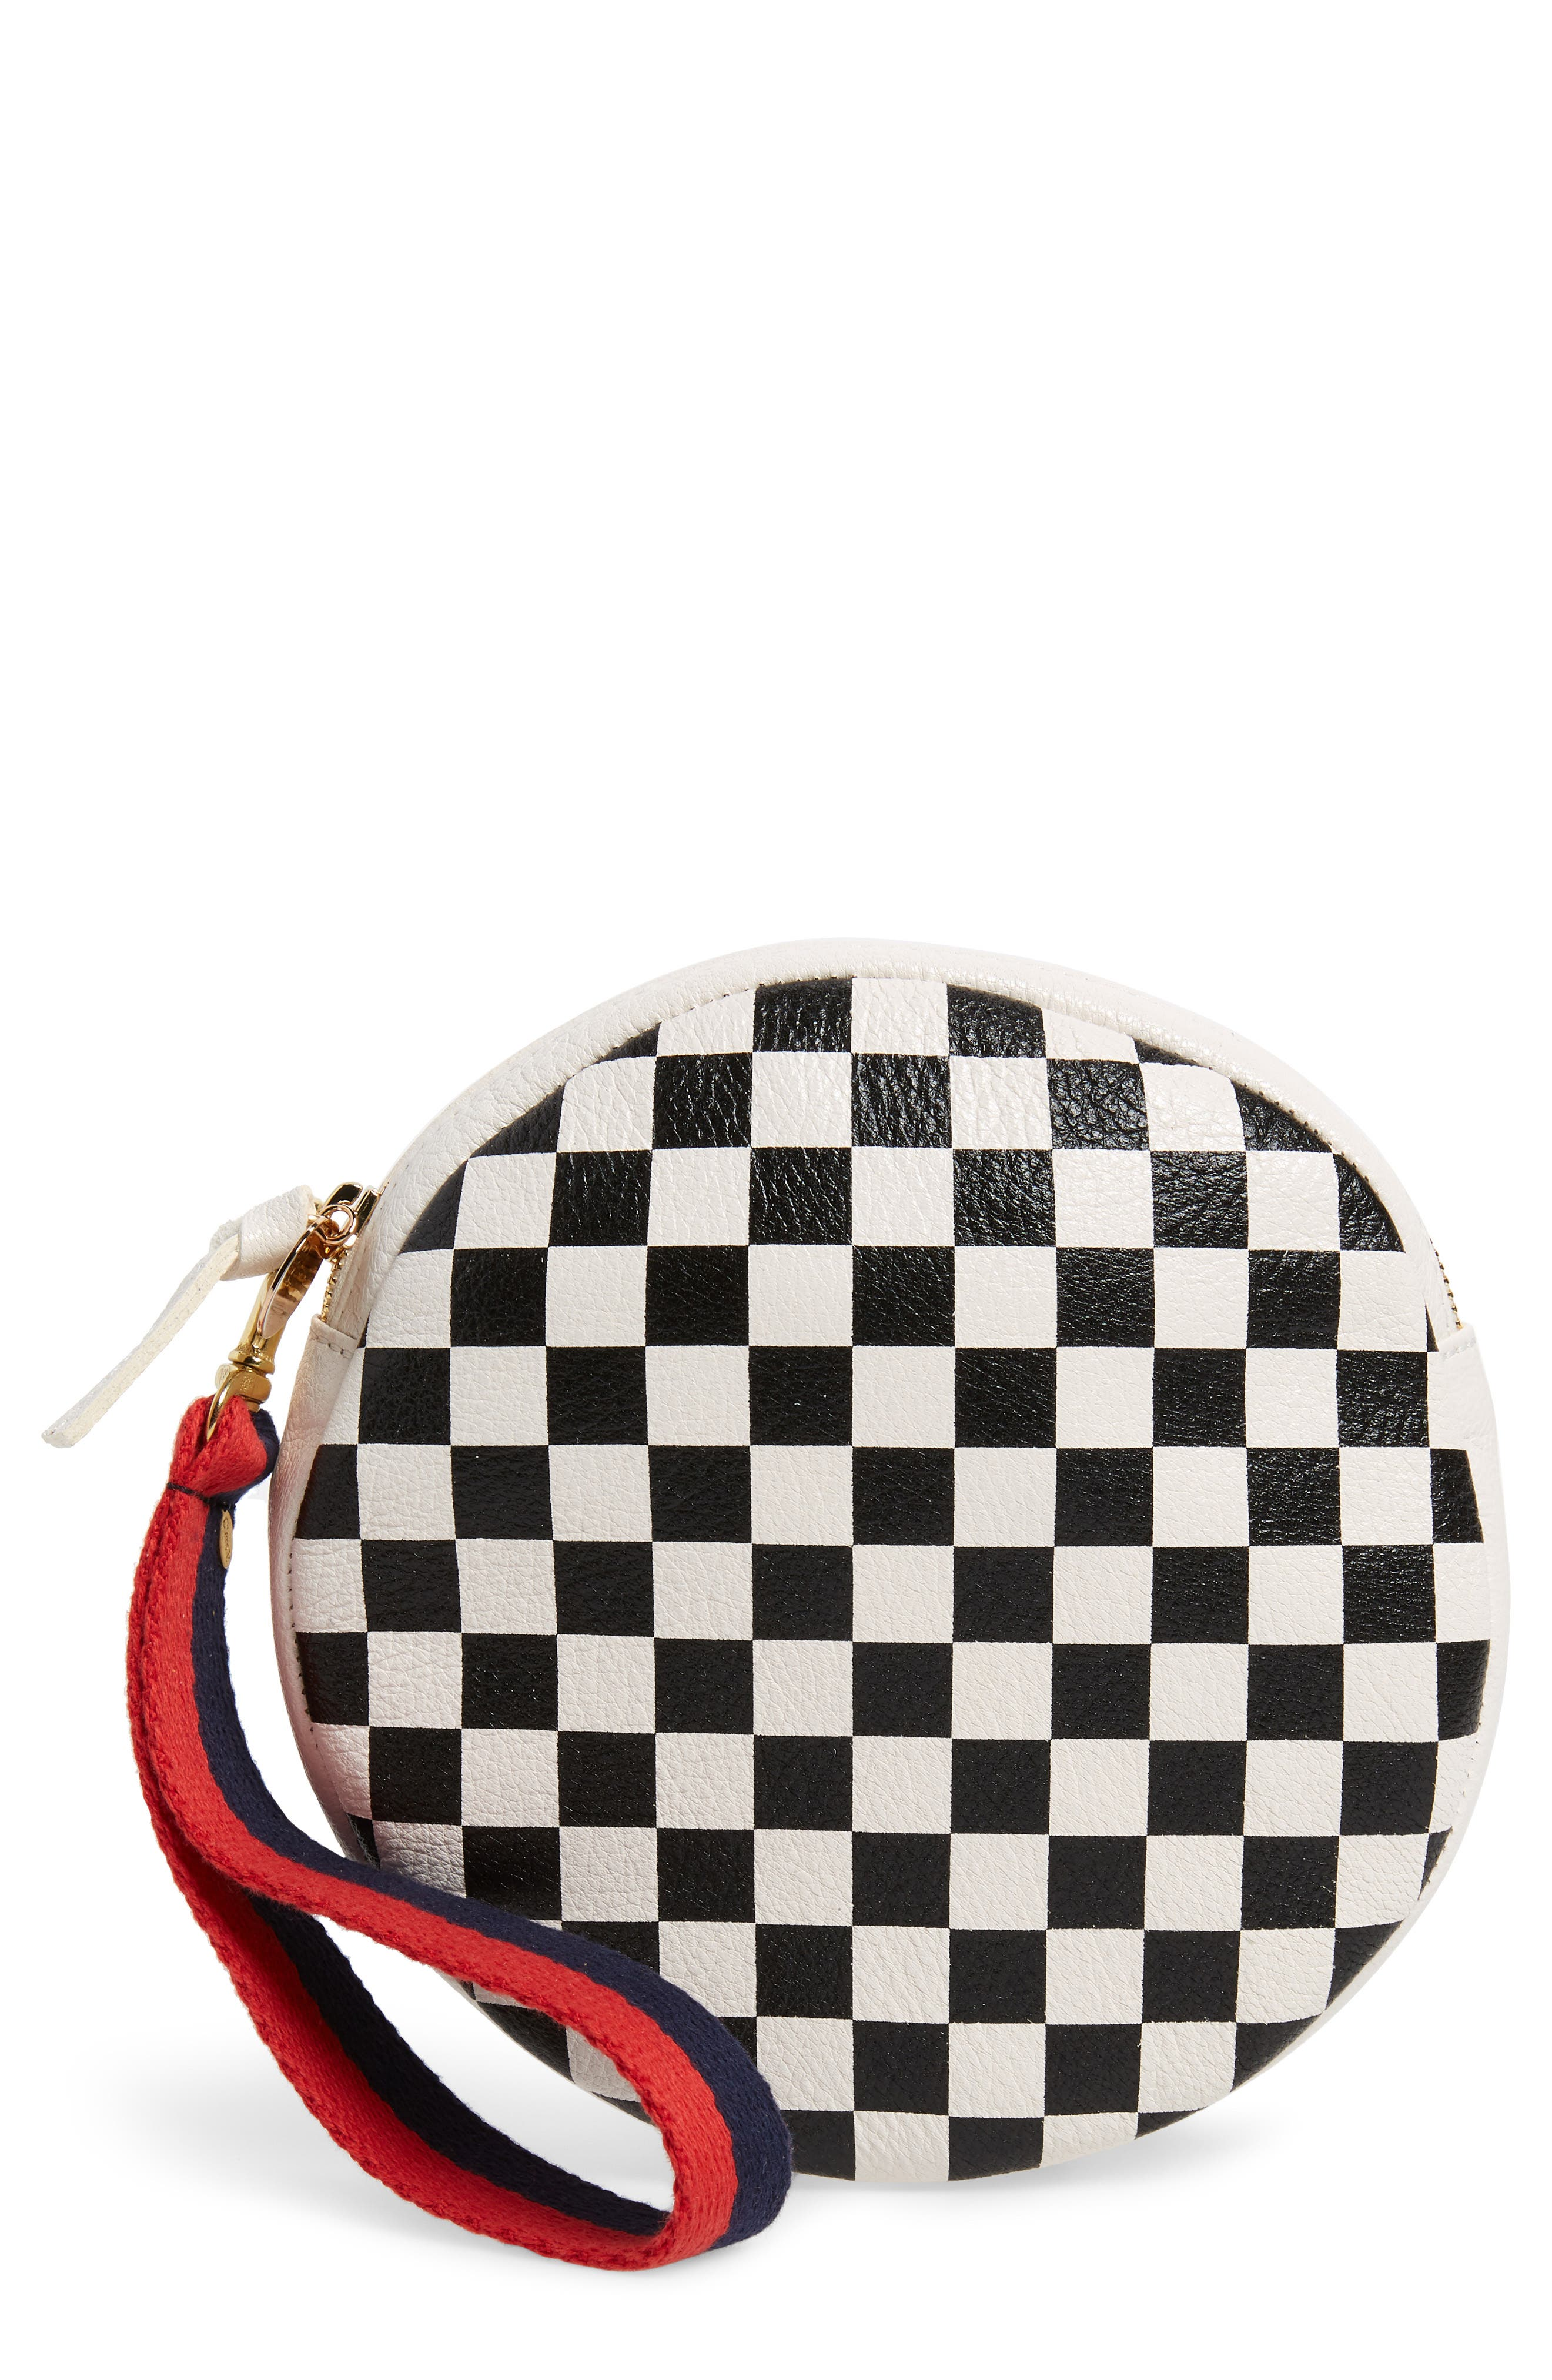 Checkered Leather Circle Clutch,                             Main thumbnail 1, color,                             Cream/ Black Checker